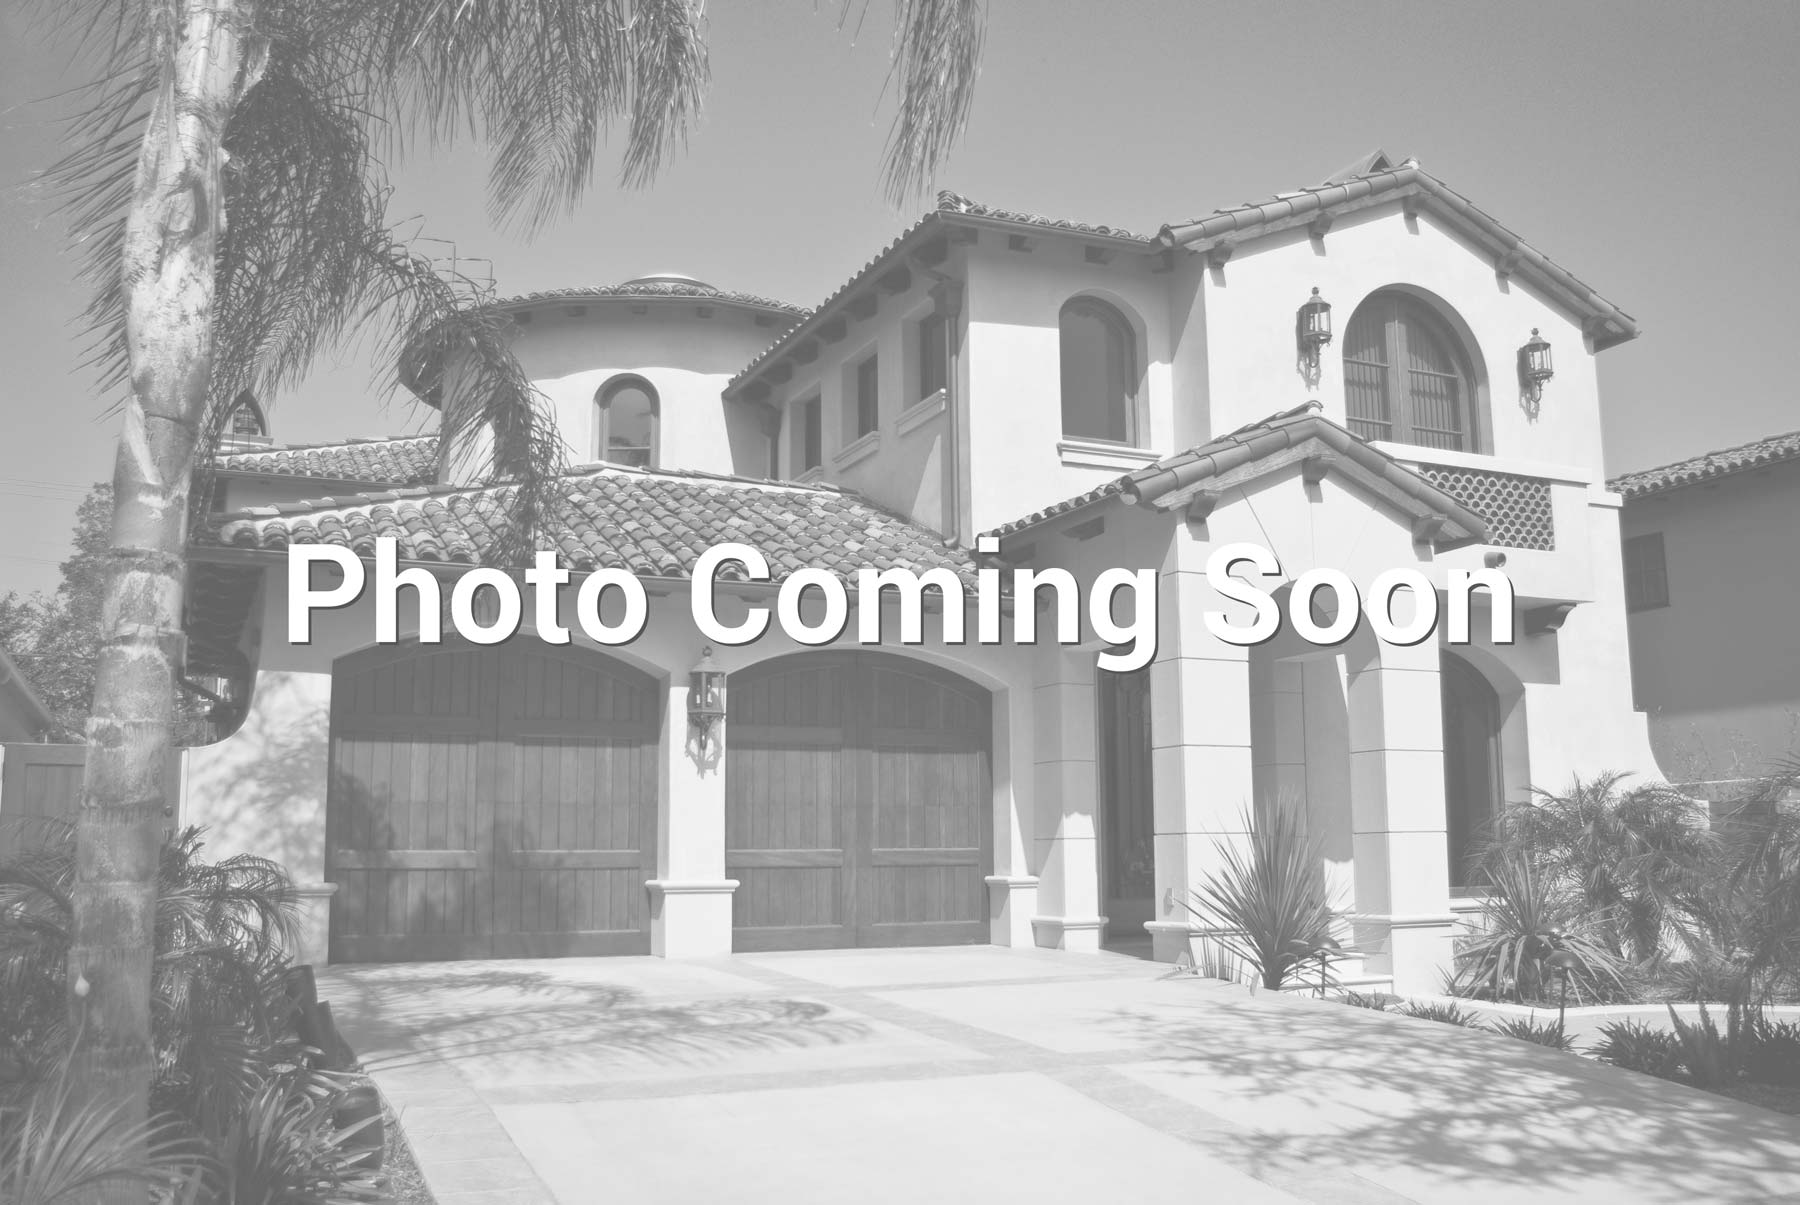 $865,000 - 5Br/3Ba -  for Sale in Chula Vista, Chula Vista